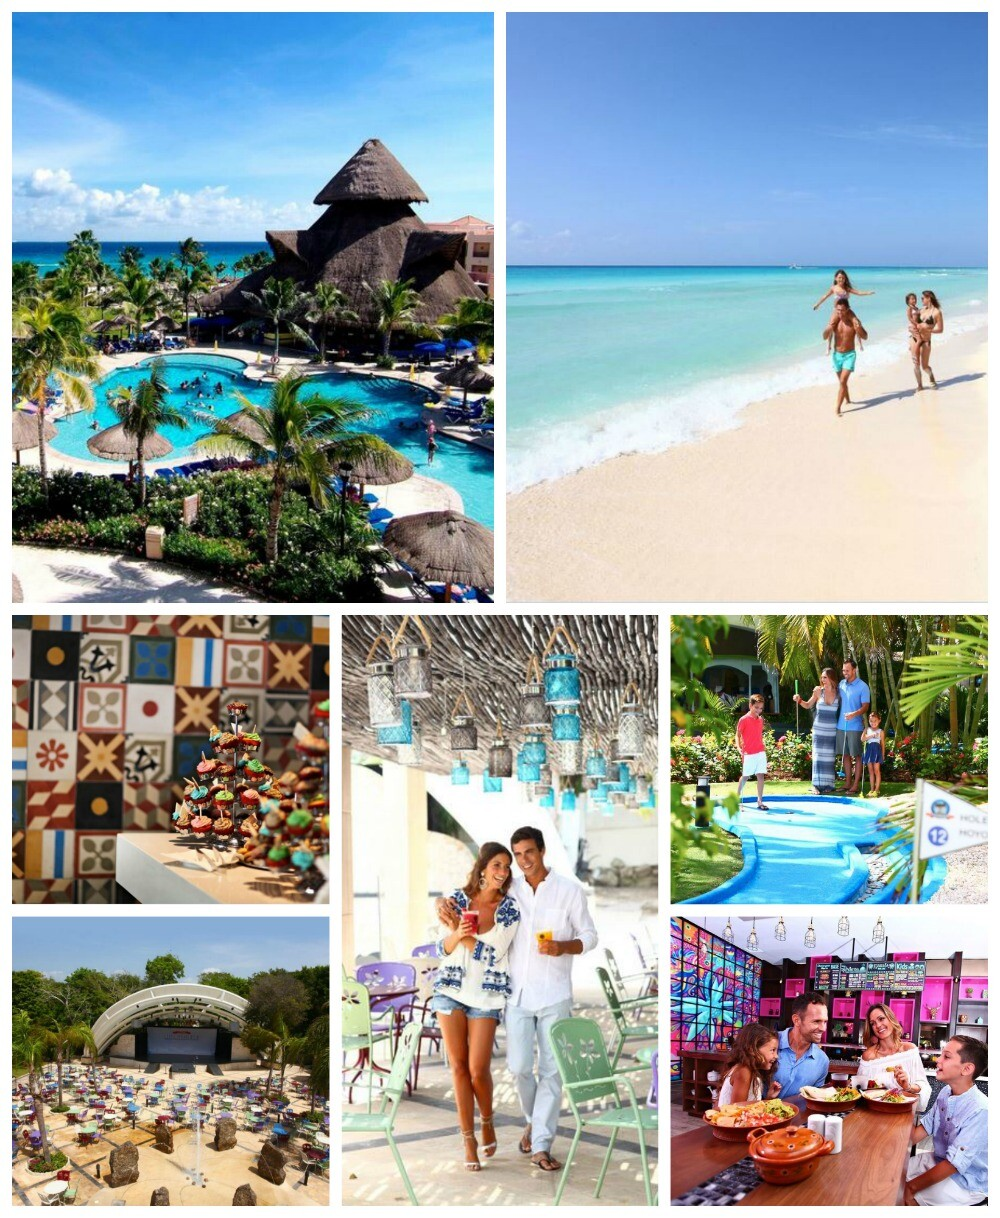 Sandos Playacar Beach Resort Activities